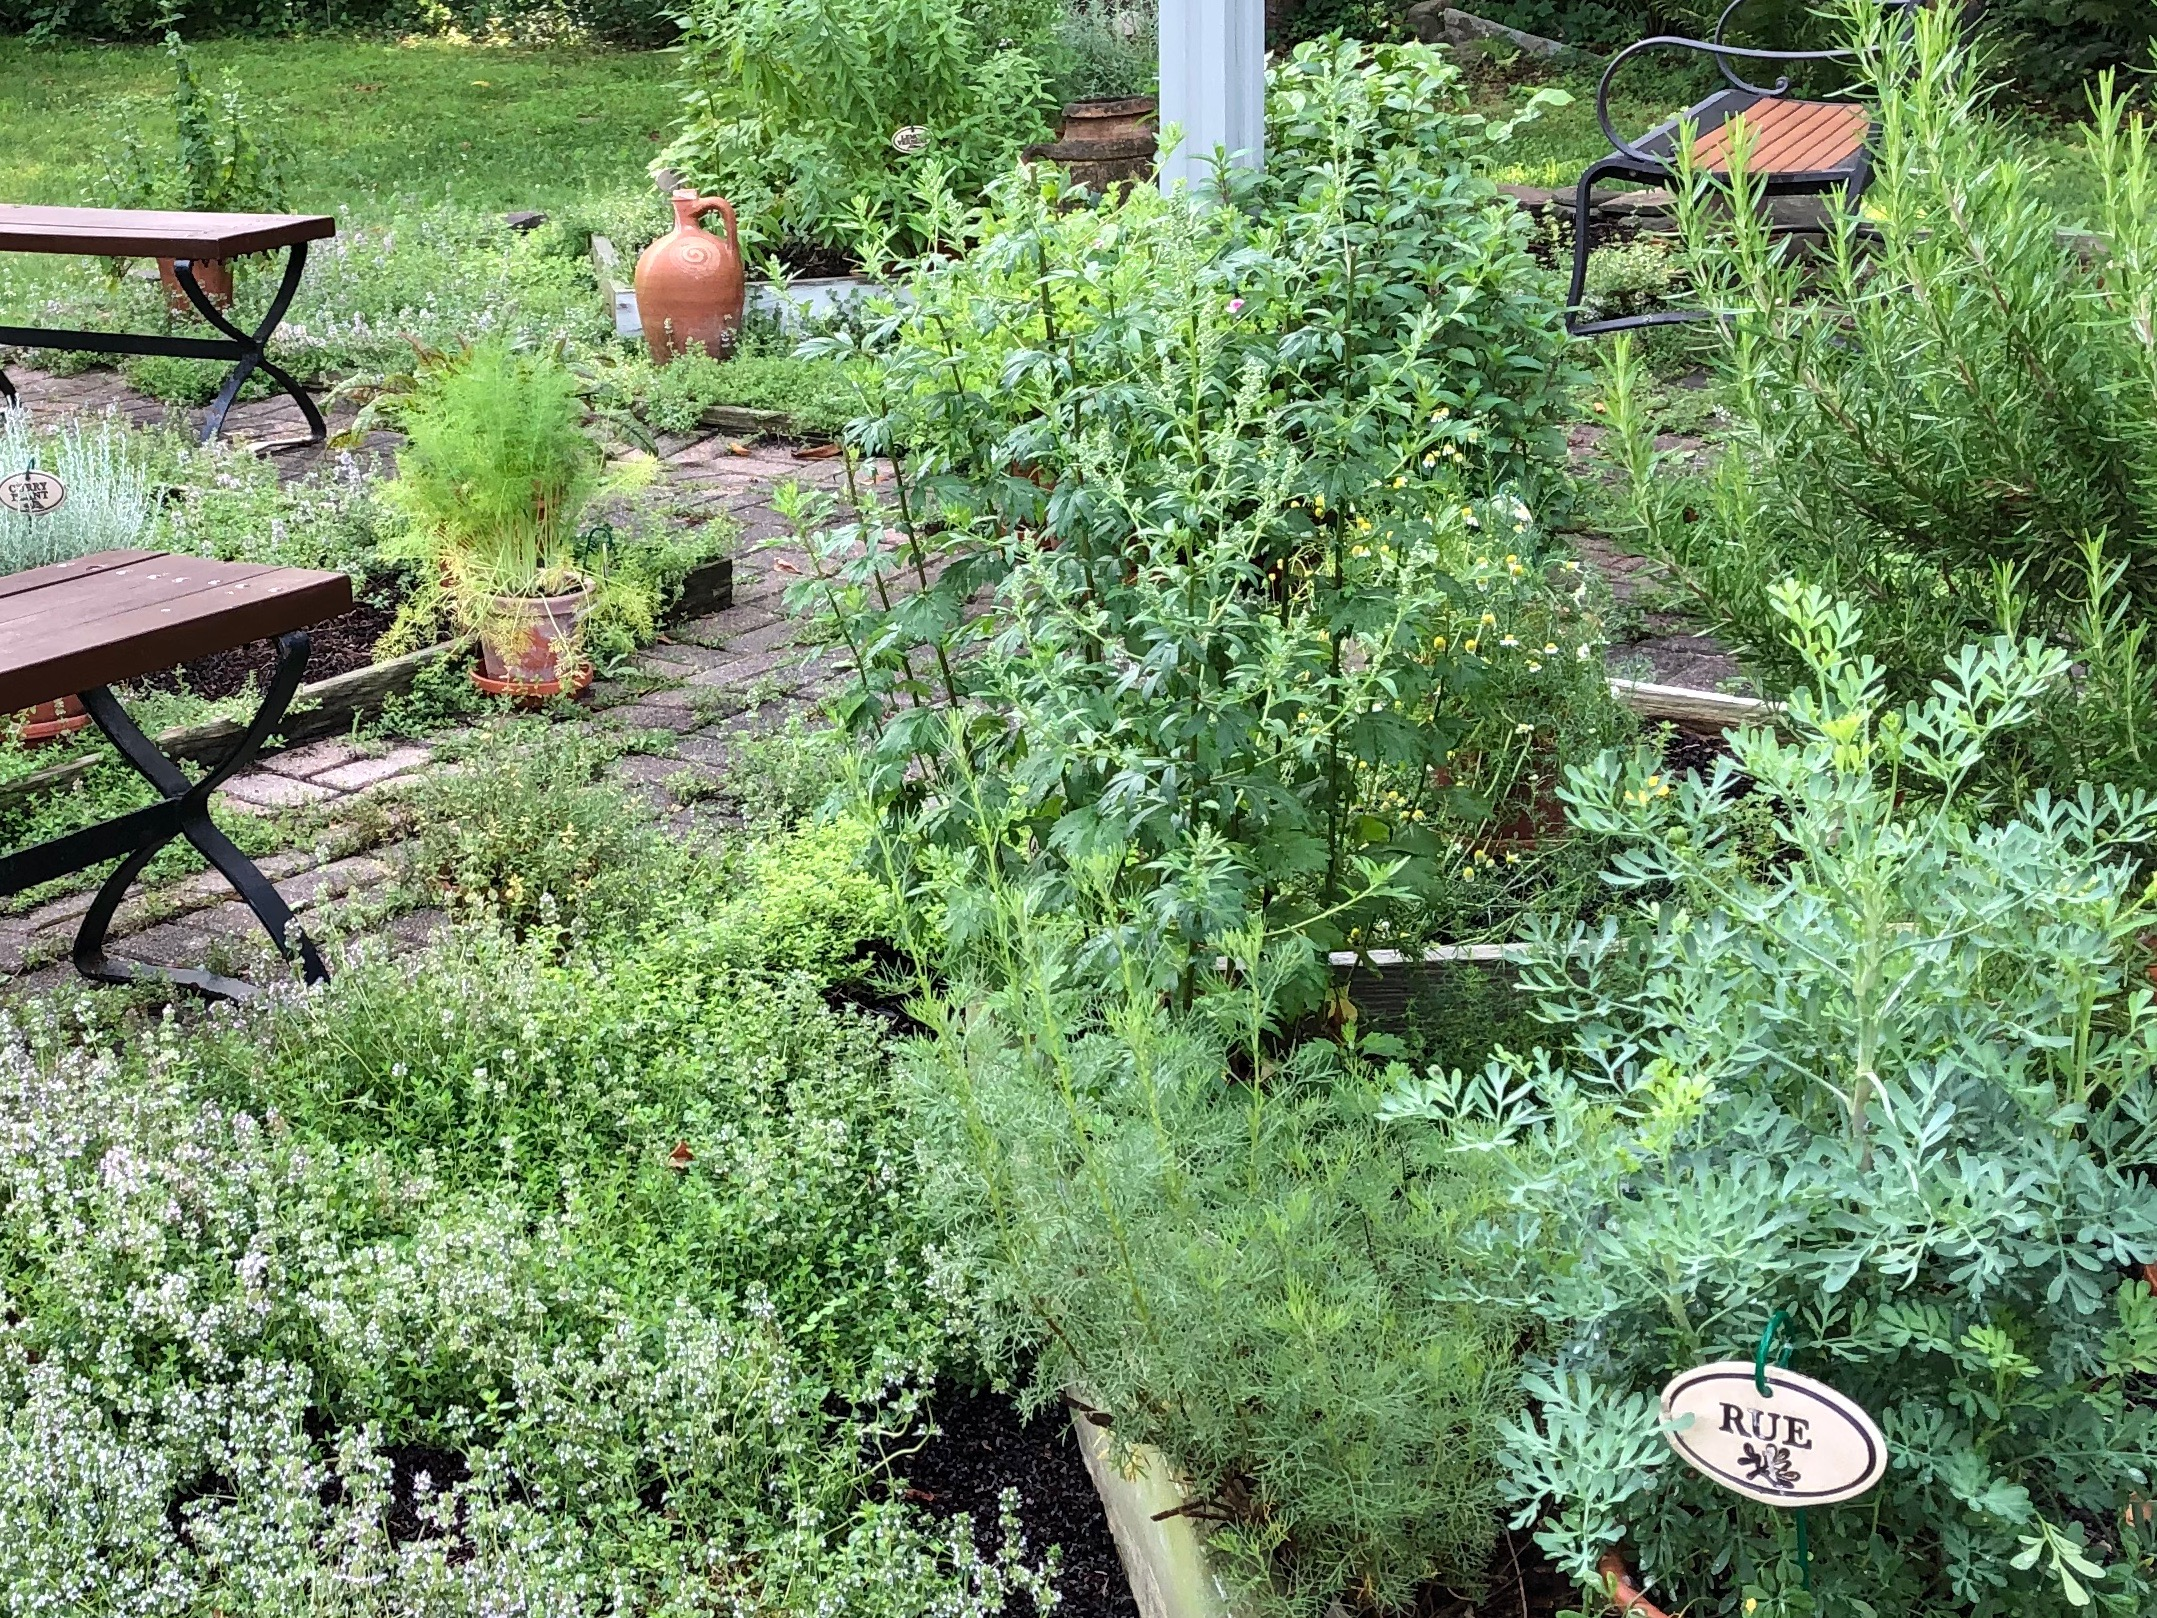 071619-rue-and-other-herbs